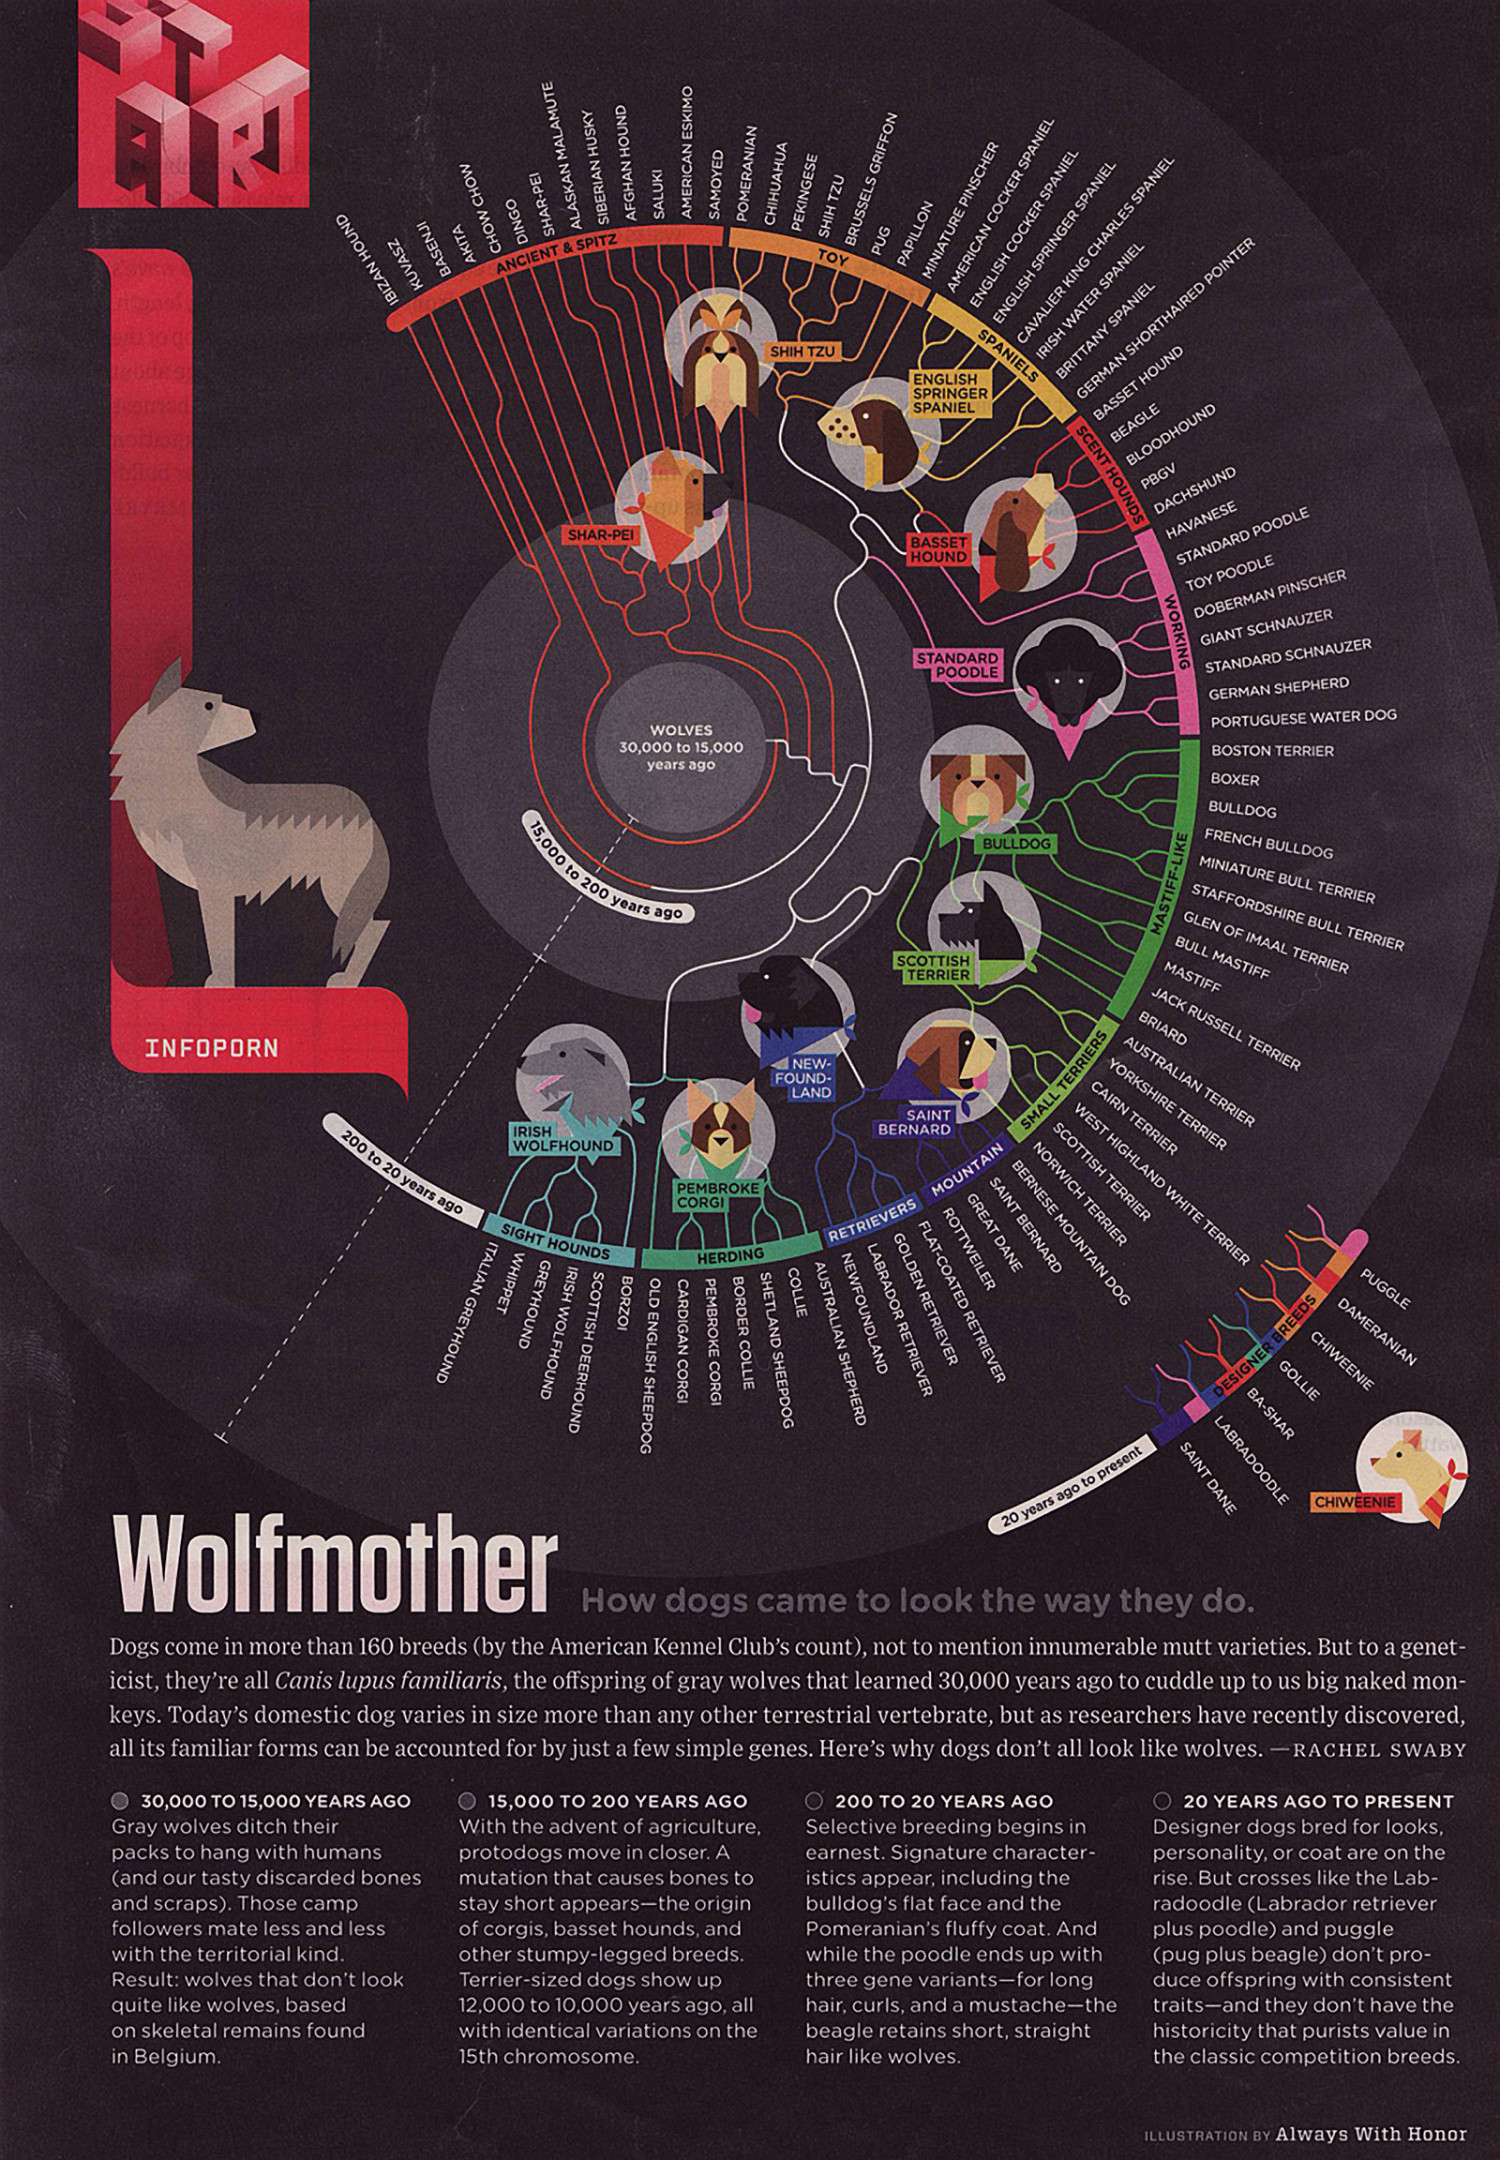 Wolfmother How Dogs Came to Look the Way They Do Infographic